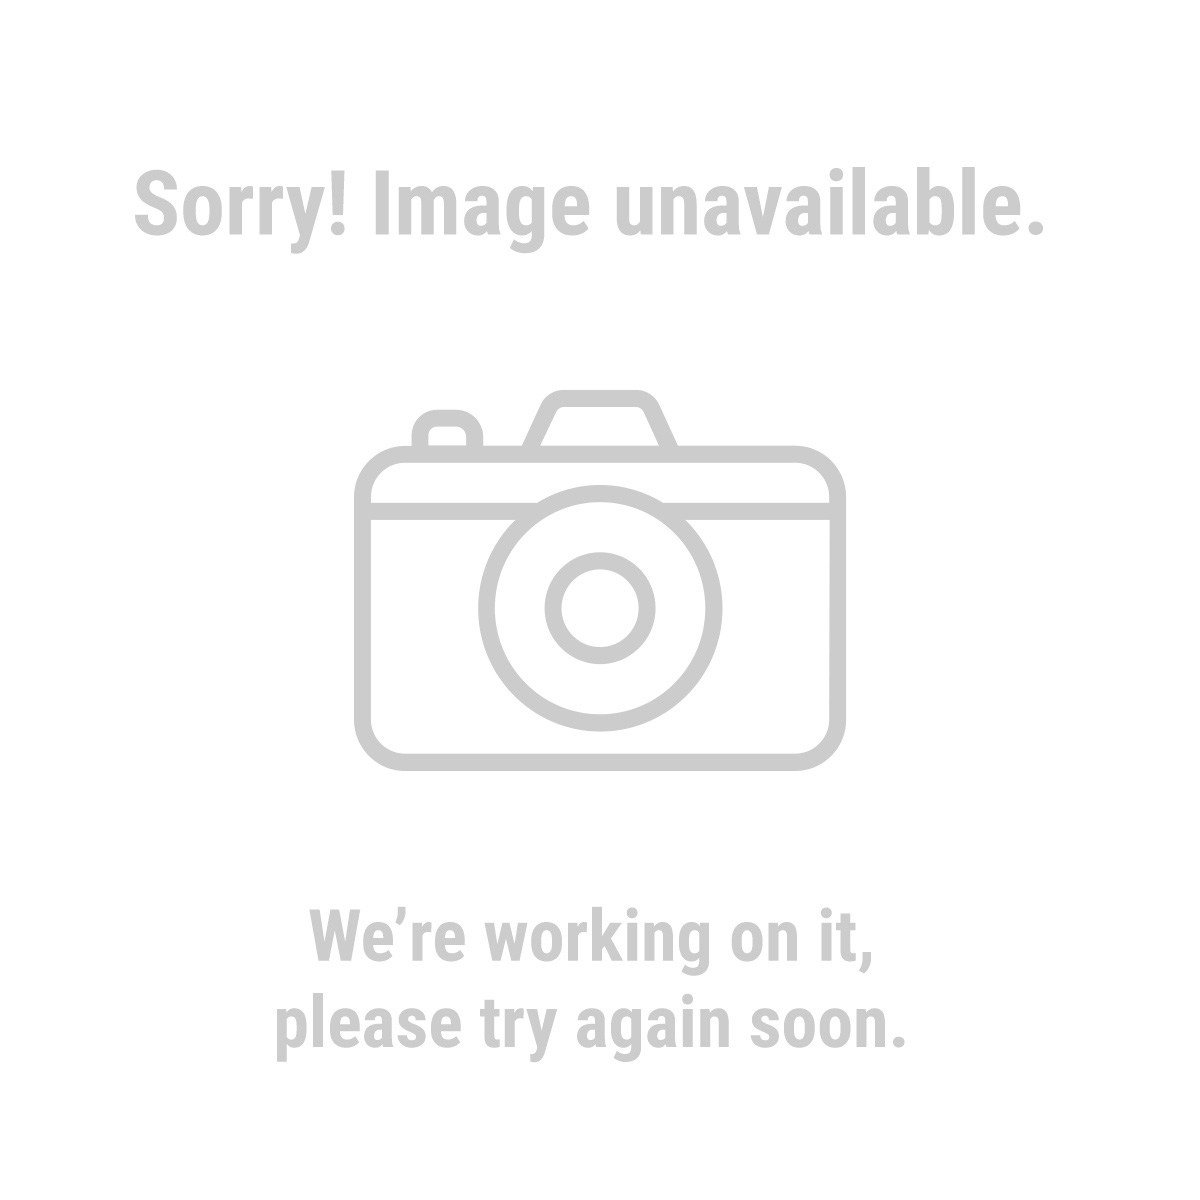 Drill Master 61204 6 In. Cut-Off Saw